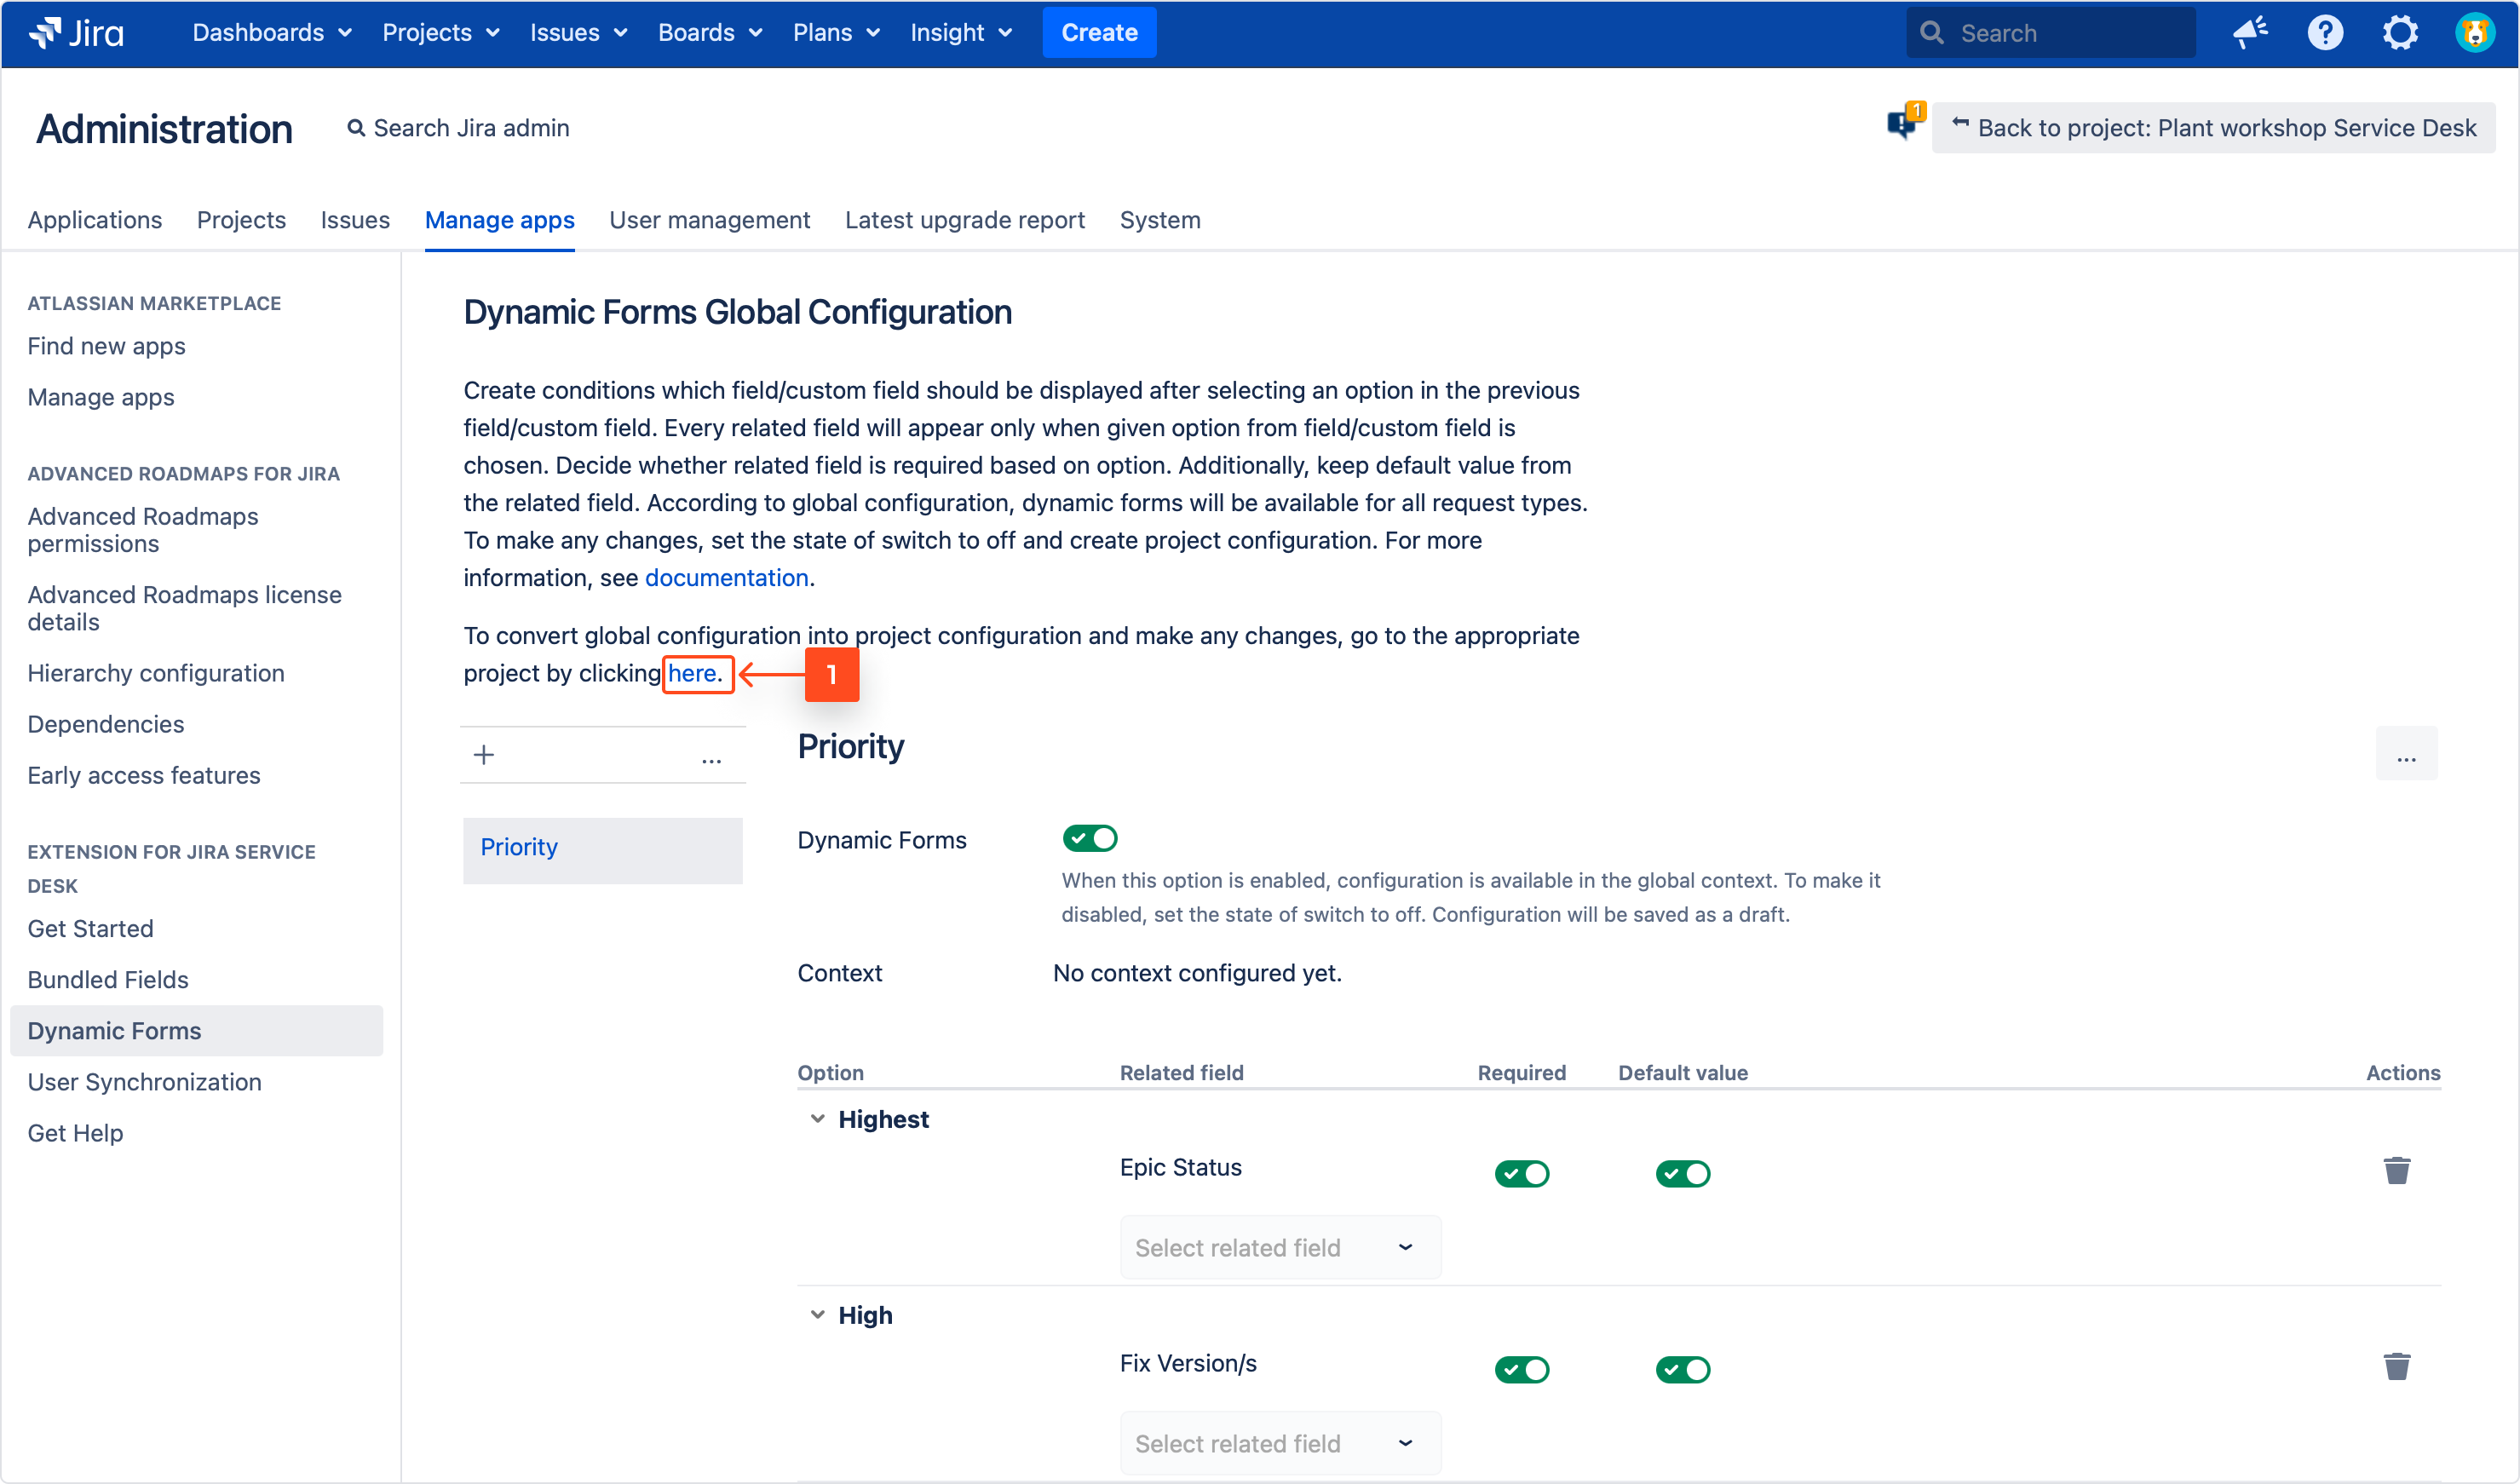 Converting a global configuration into the project configuration with Extension for Jira Service Management